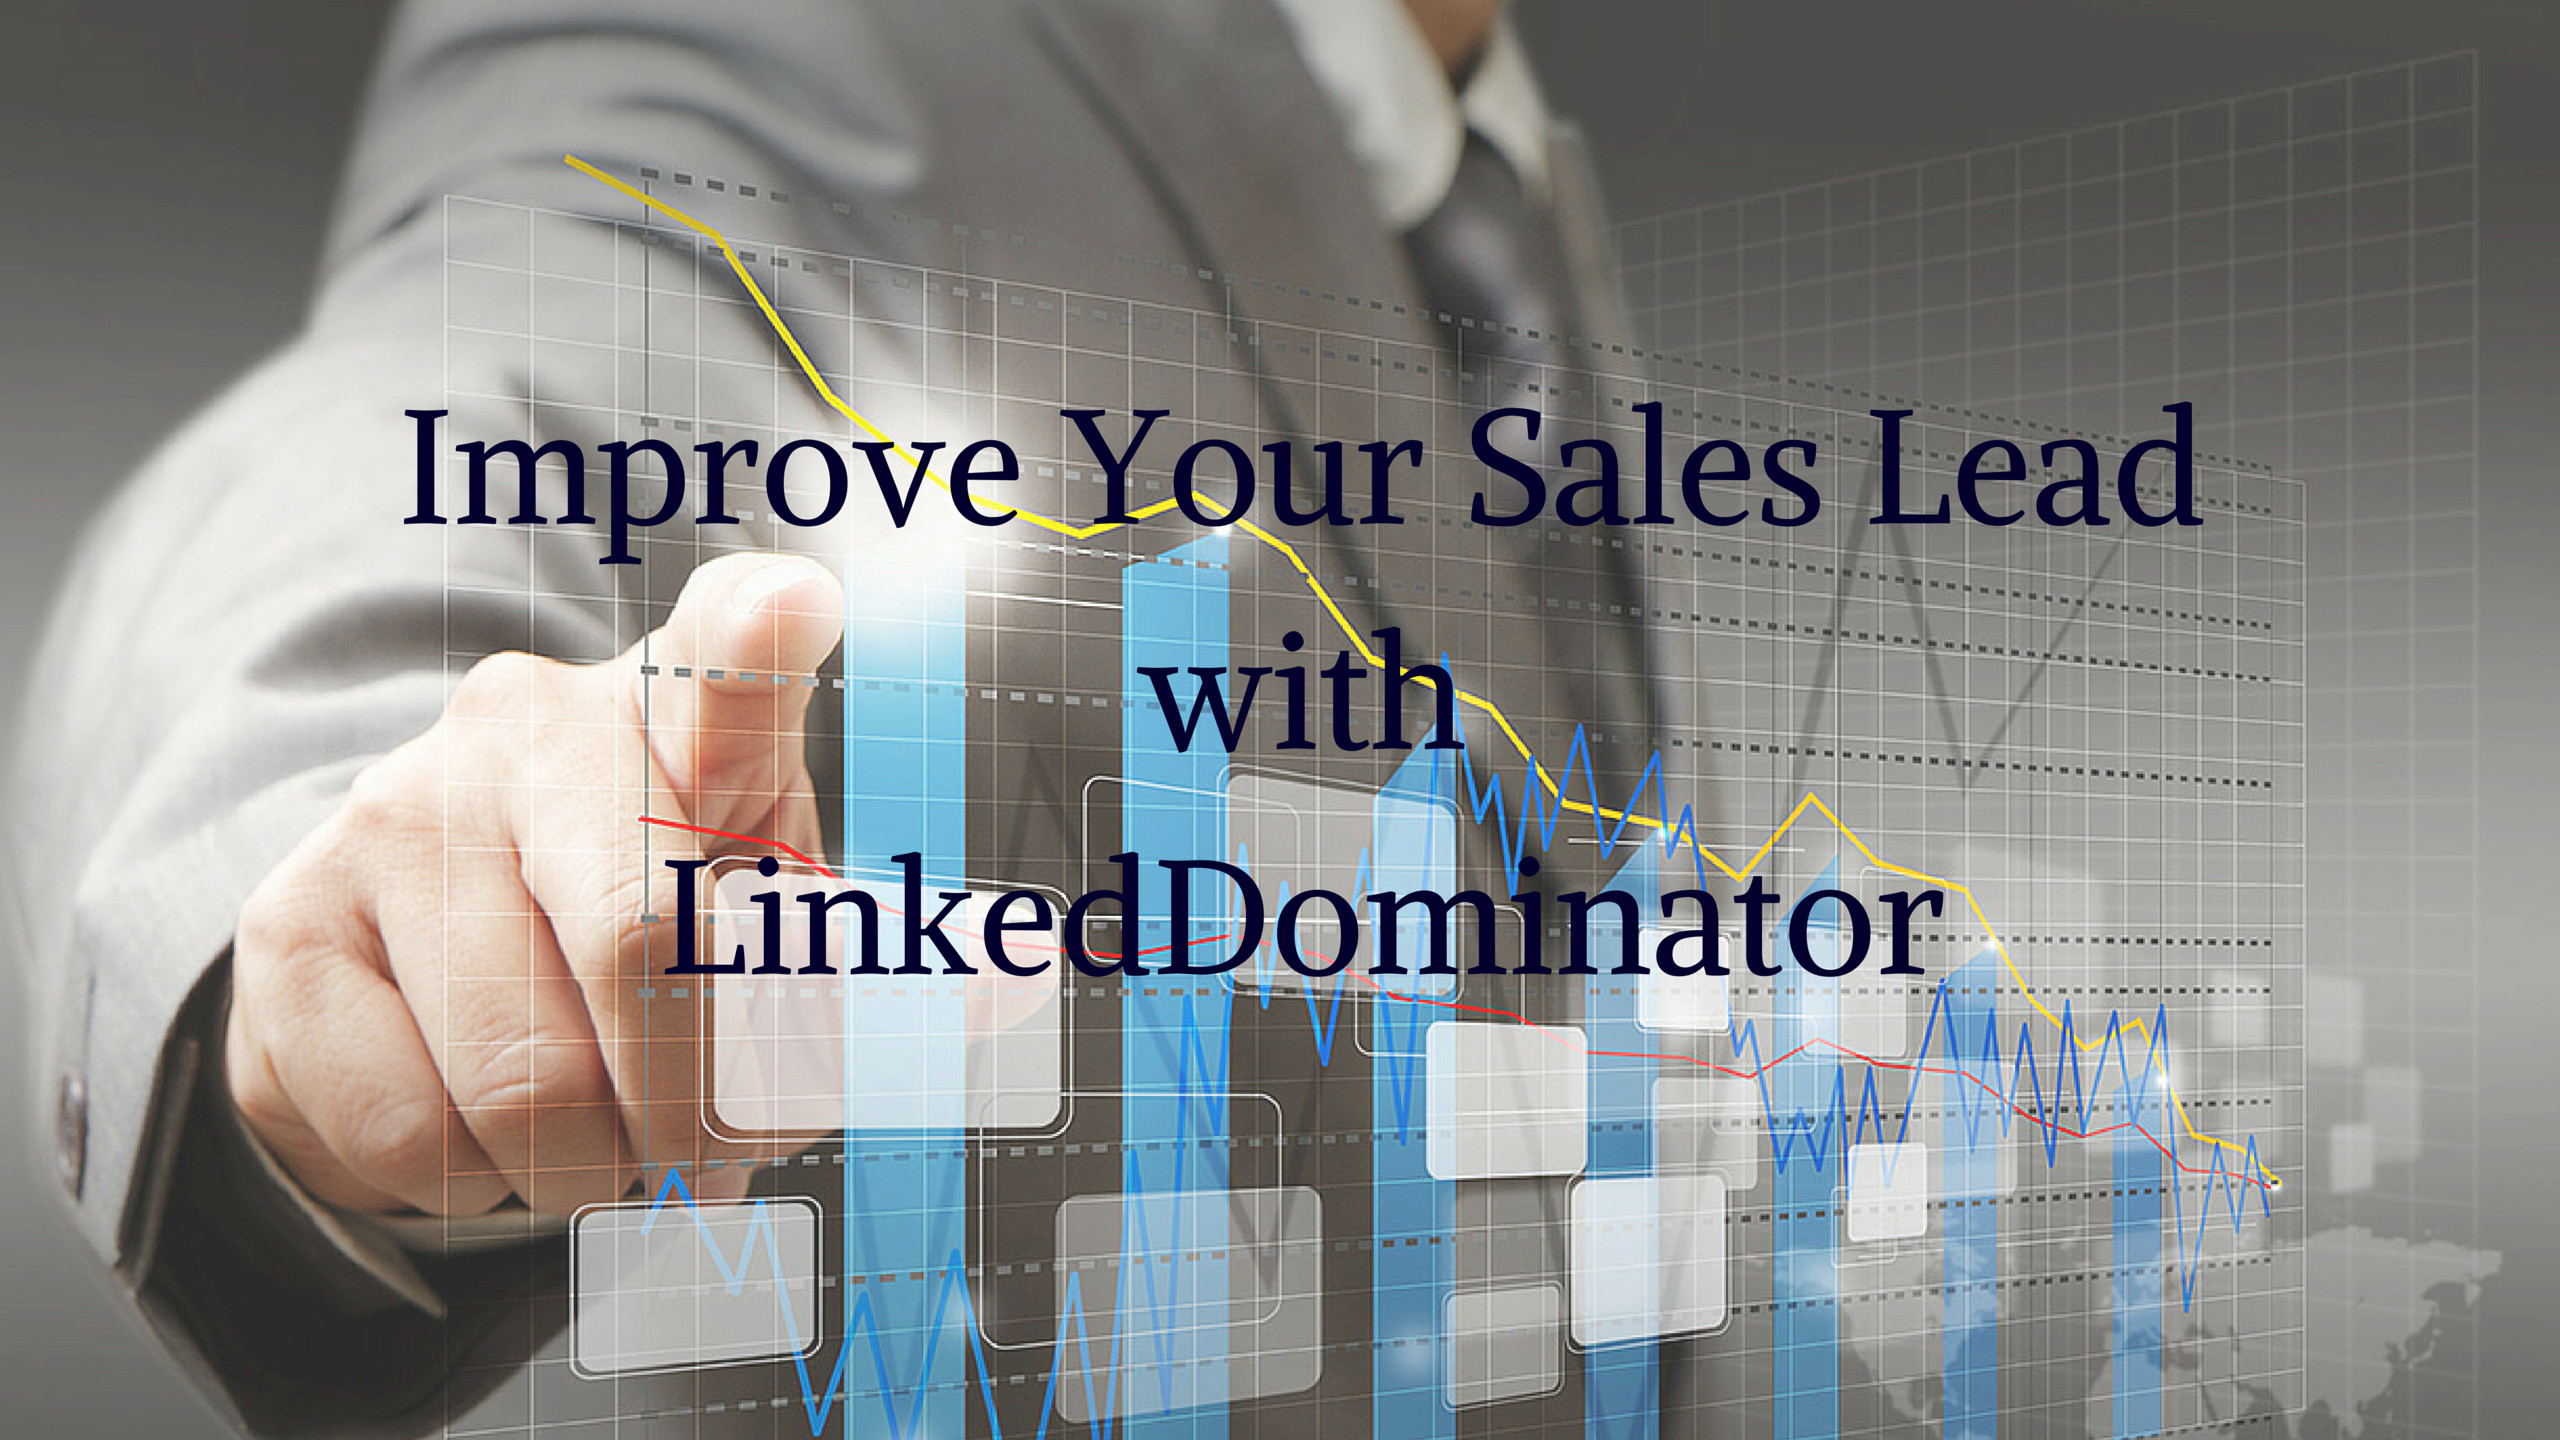 How a Financial Company Increases 81% Sales Lead Using LinkedDominator?